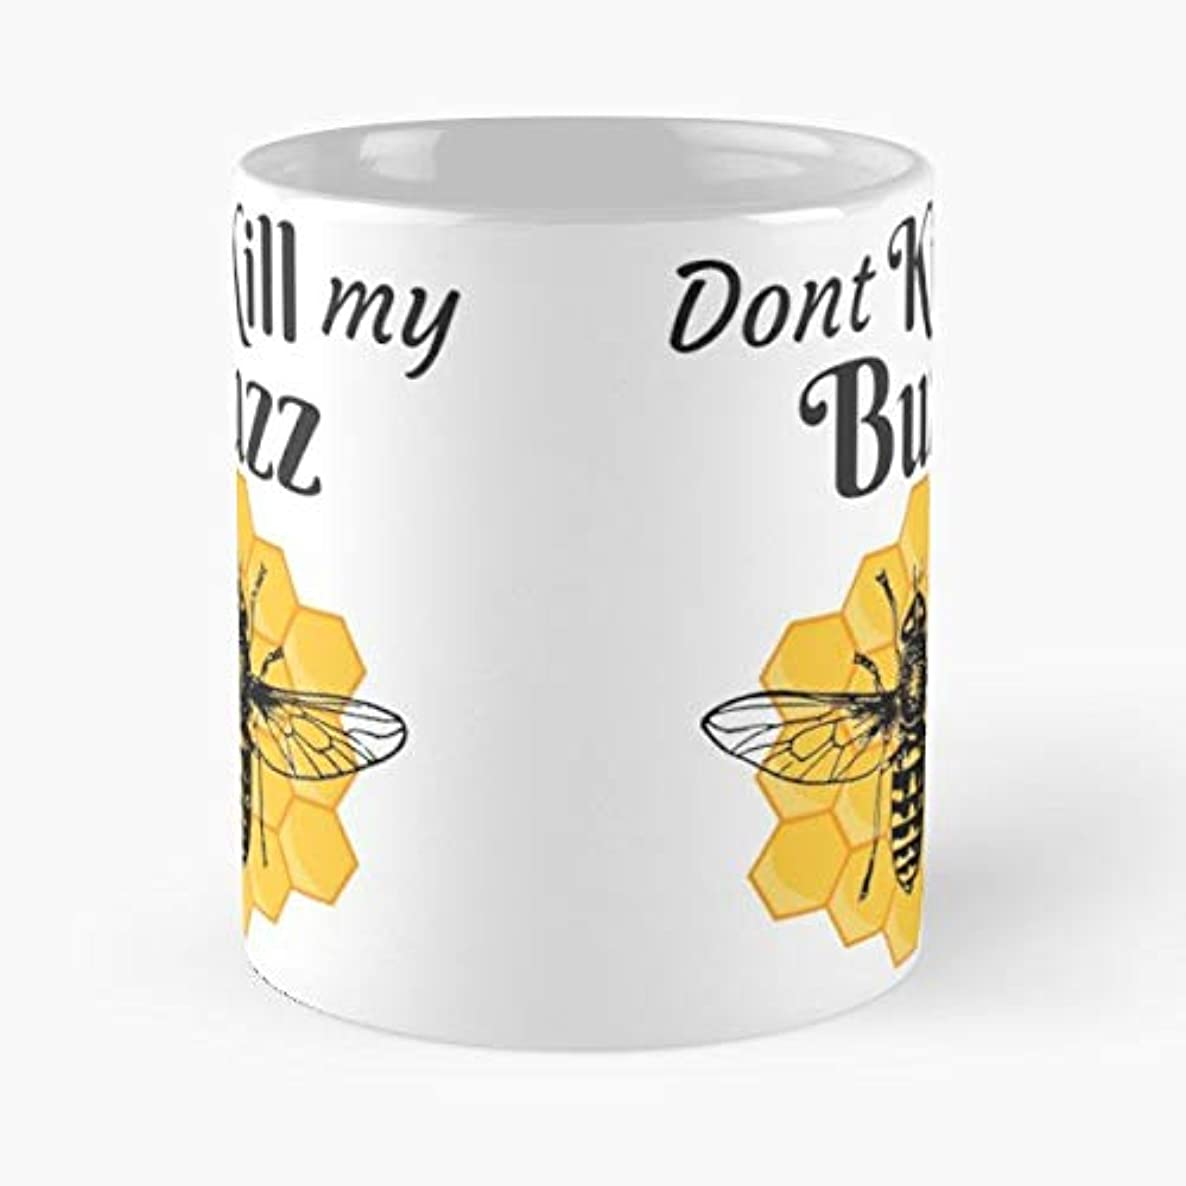 Funny Humor Buzz Kill - Funny Sophisticated Design Great Gifts -11 Oz Coffee Mug.the Best Gift For Holidays.